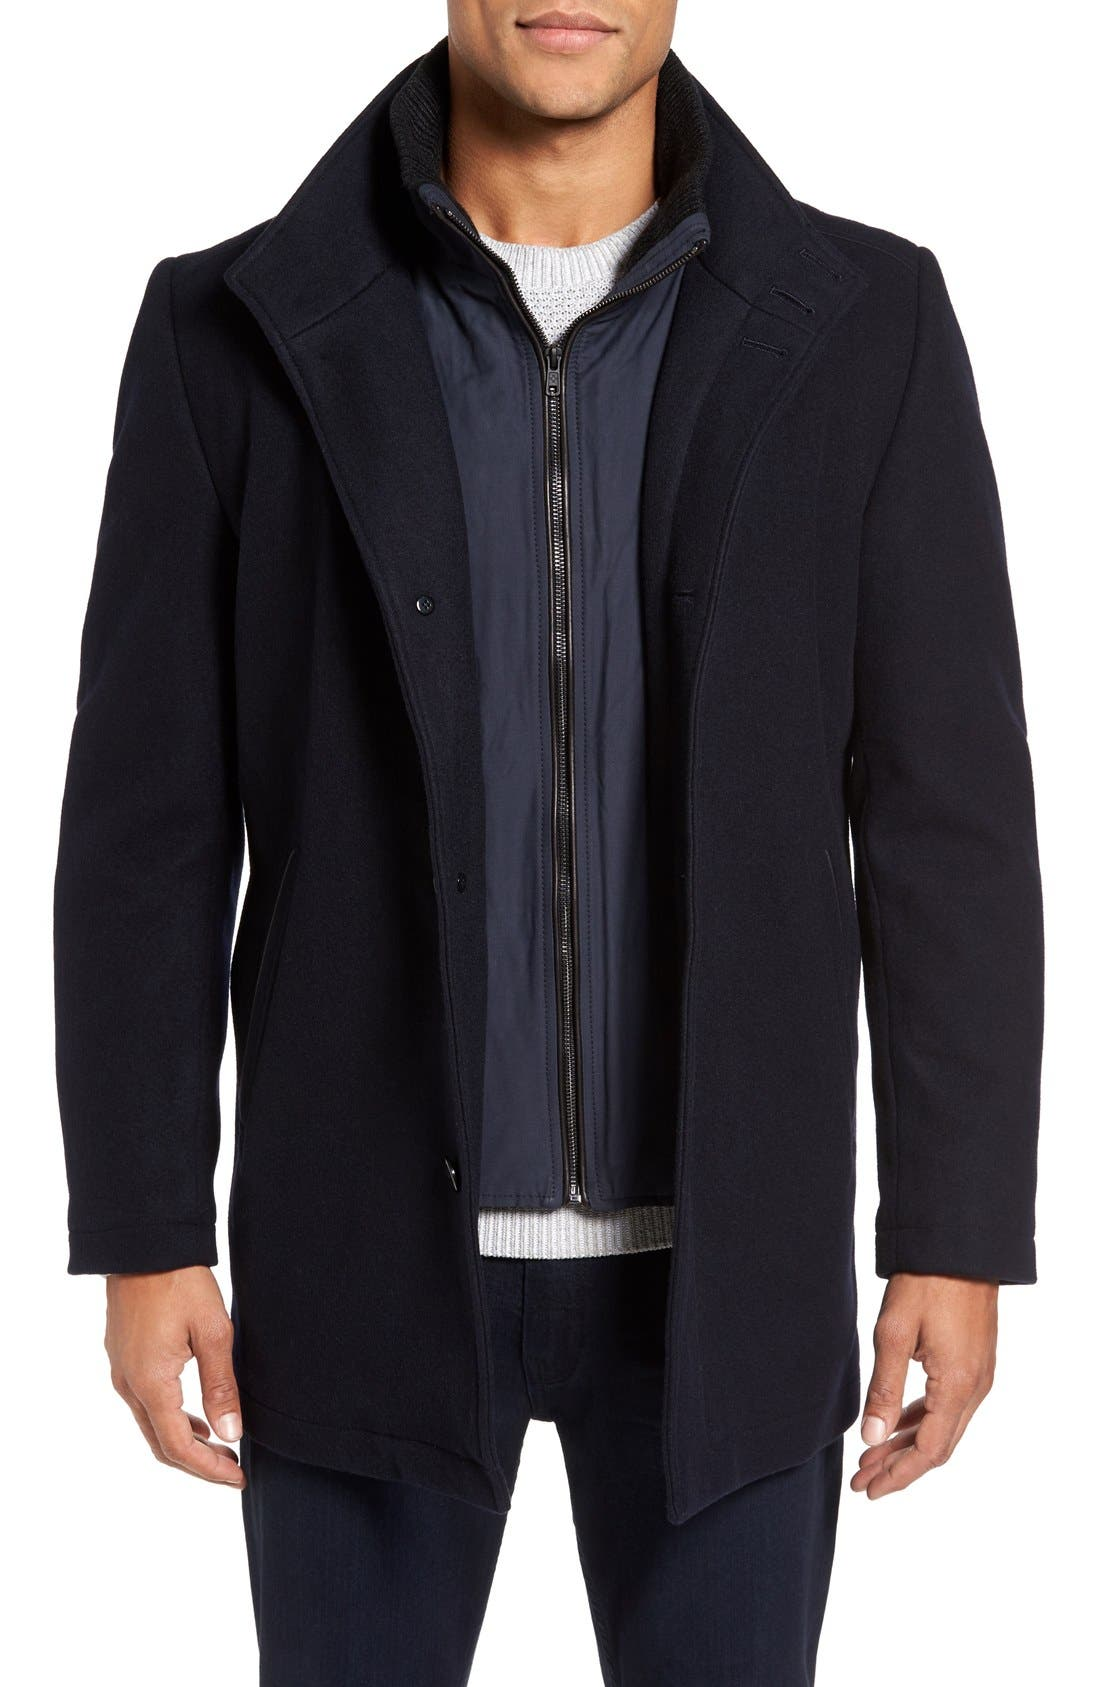 Classic Wool Blend Car Coat with Inset Bib, Main, color, NAVY